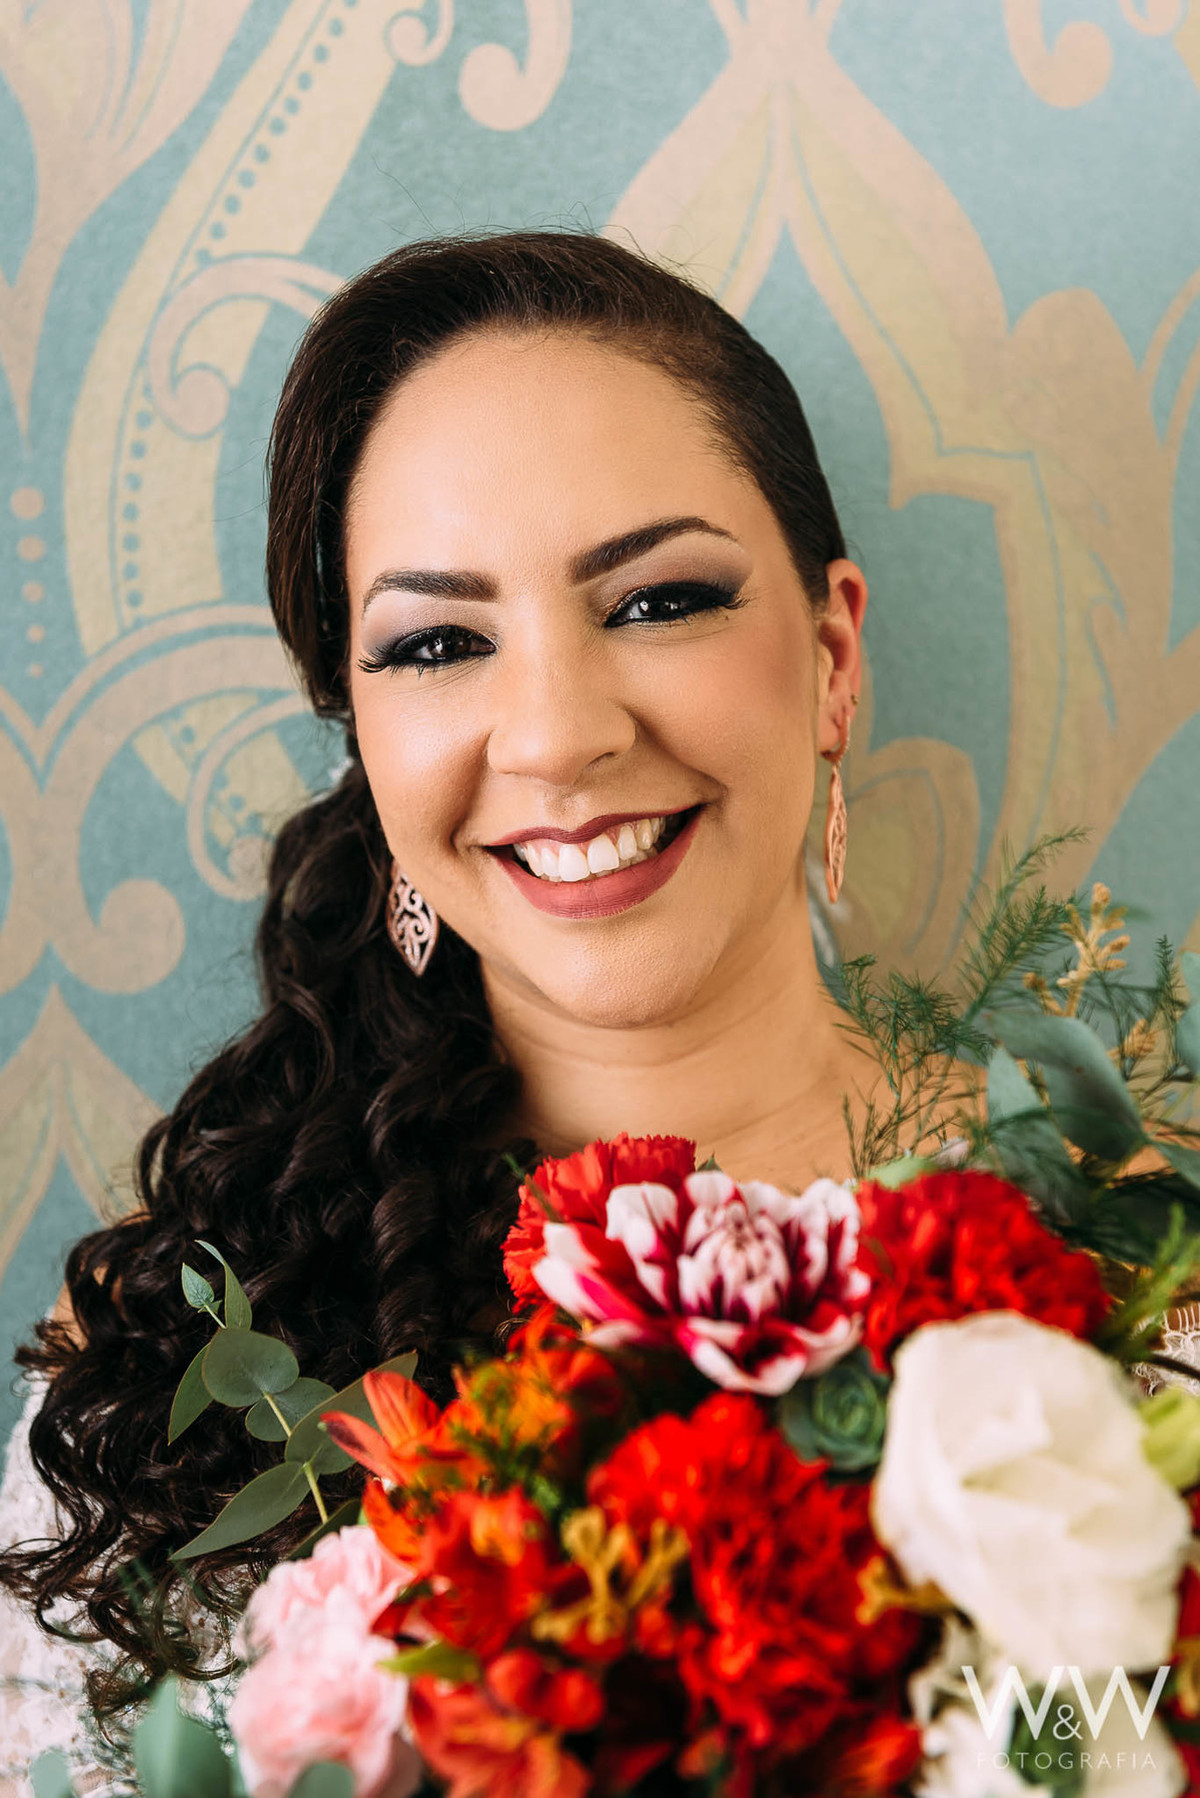 making of noiva casamento bouquet